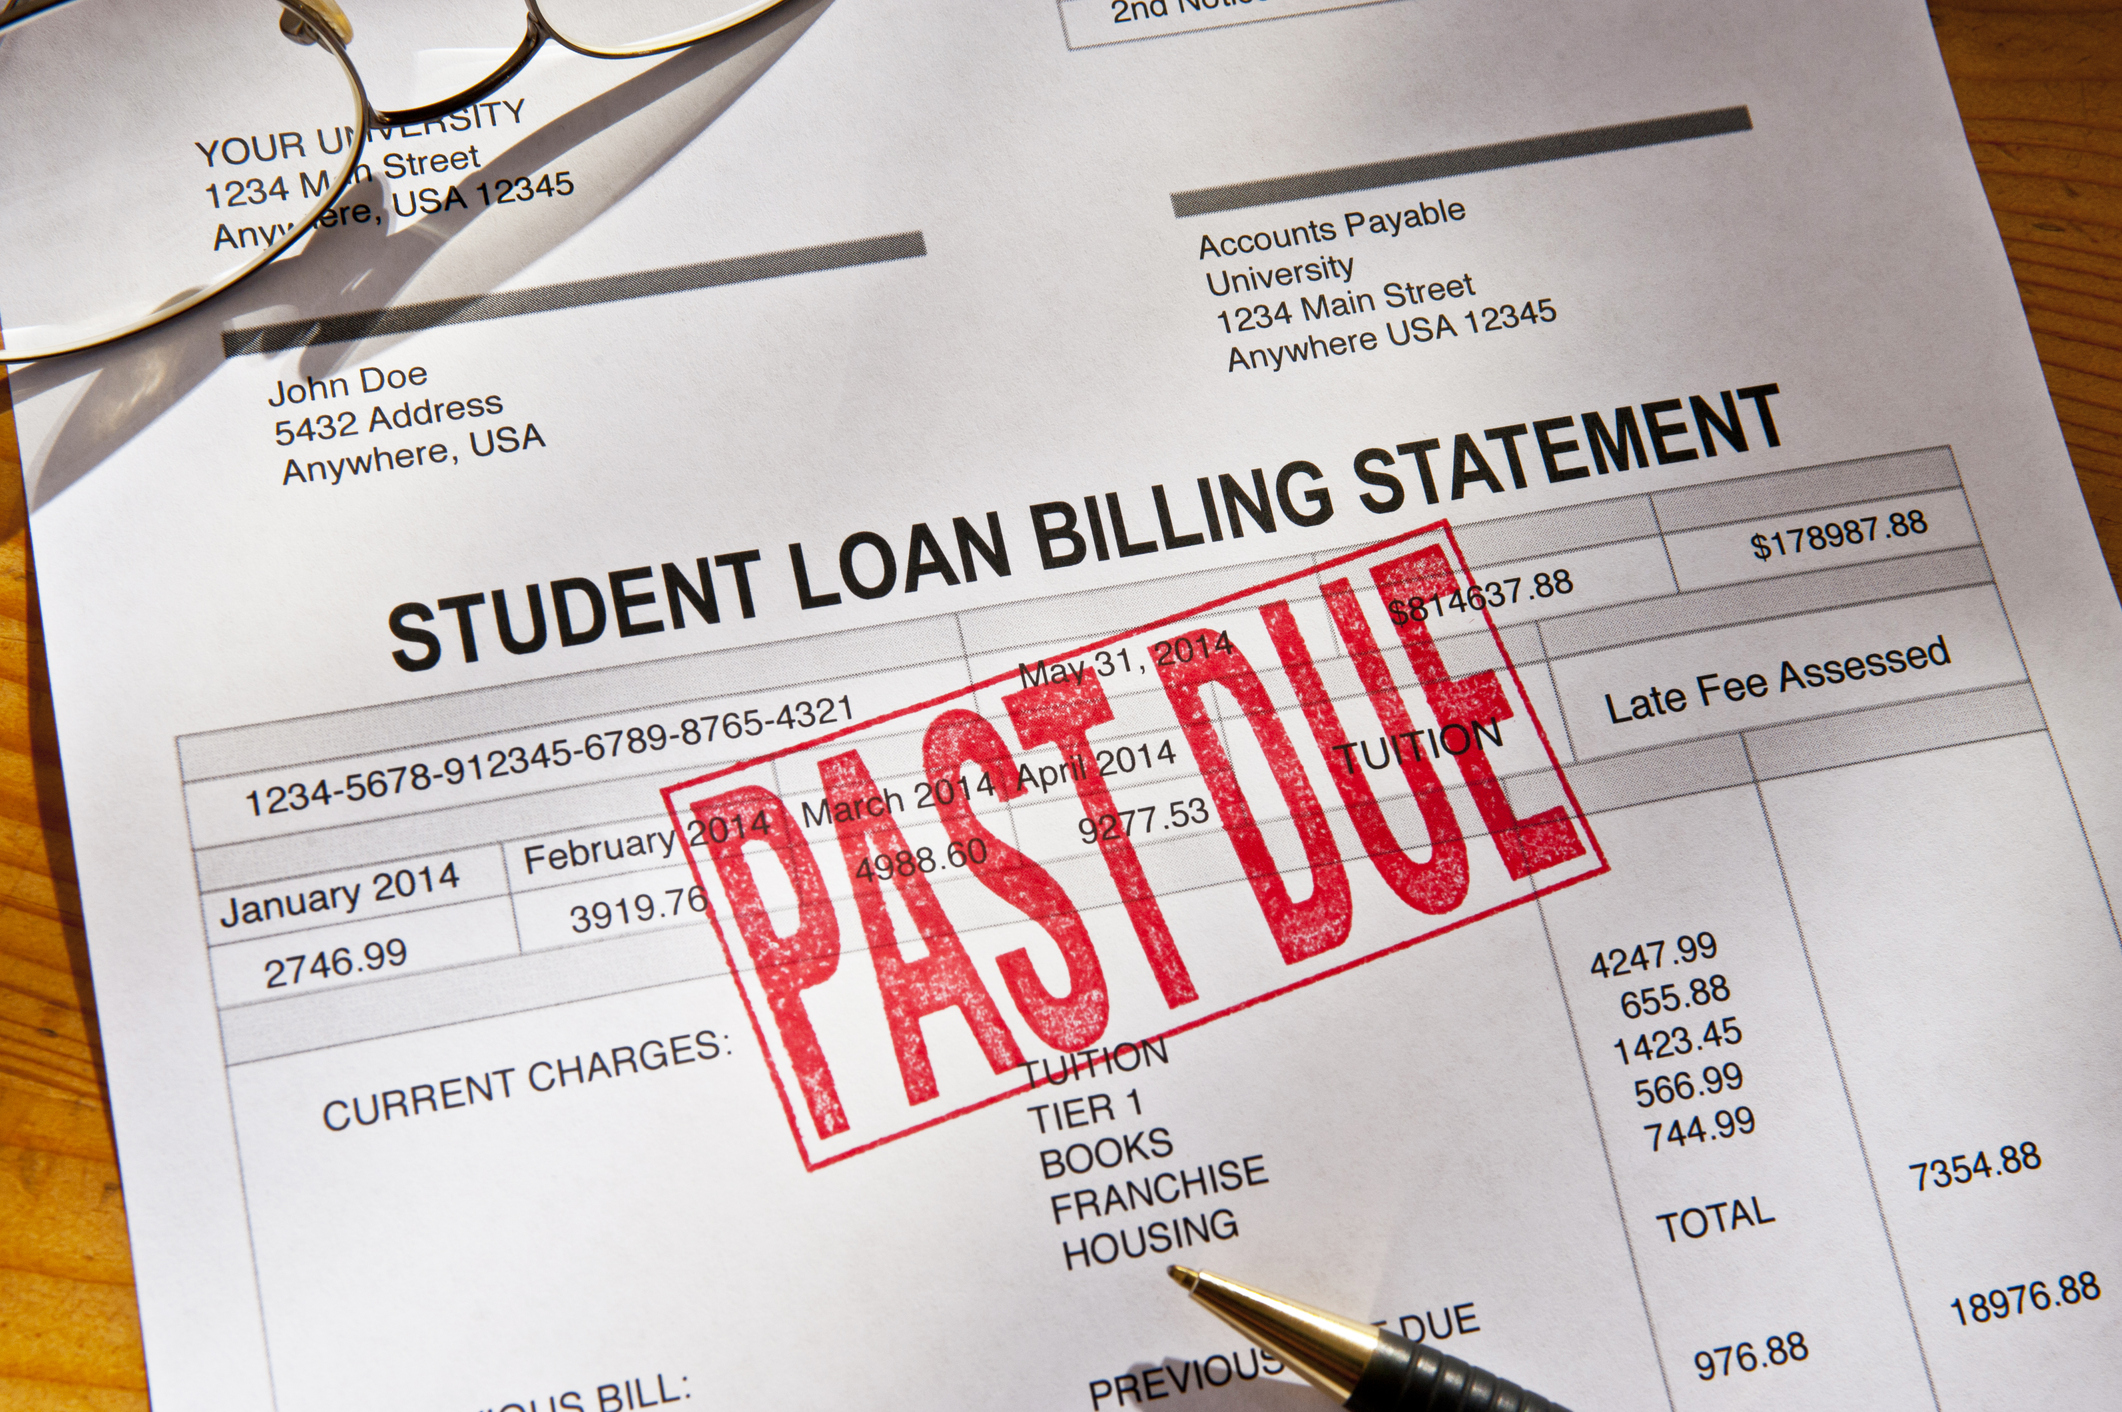 Tek advantage of this pause in student loan payments to get yourself back on track with other bills, if necessary!